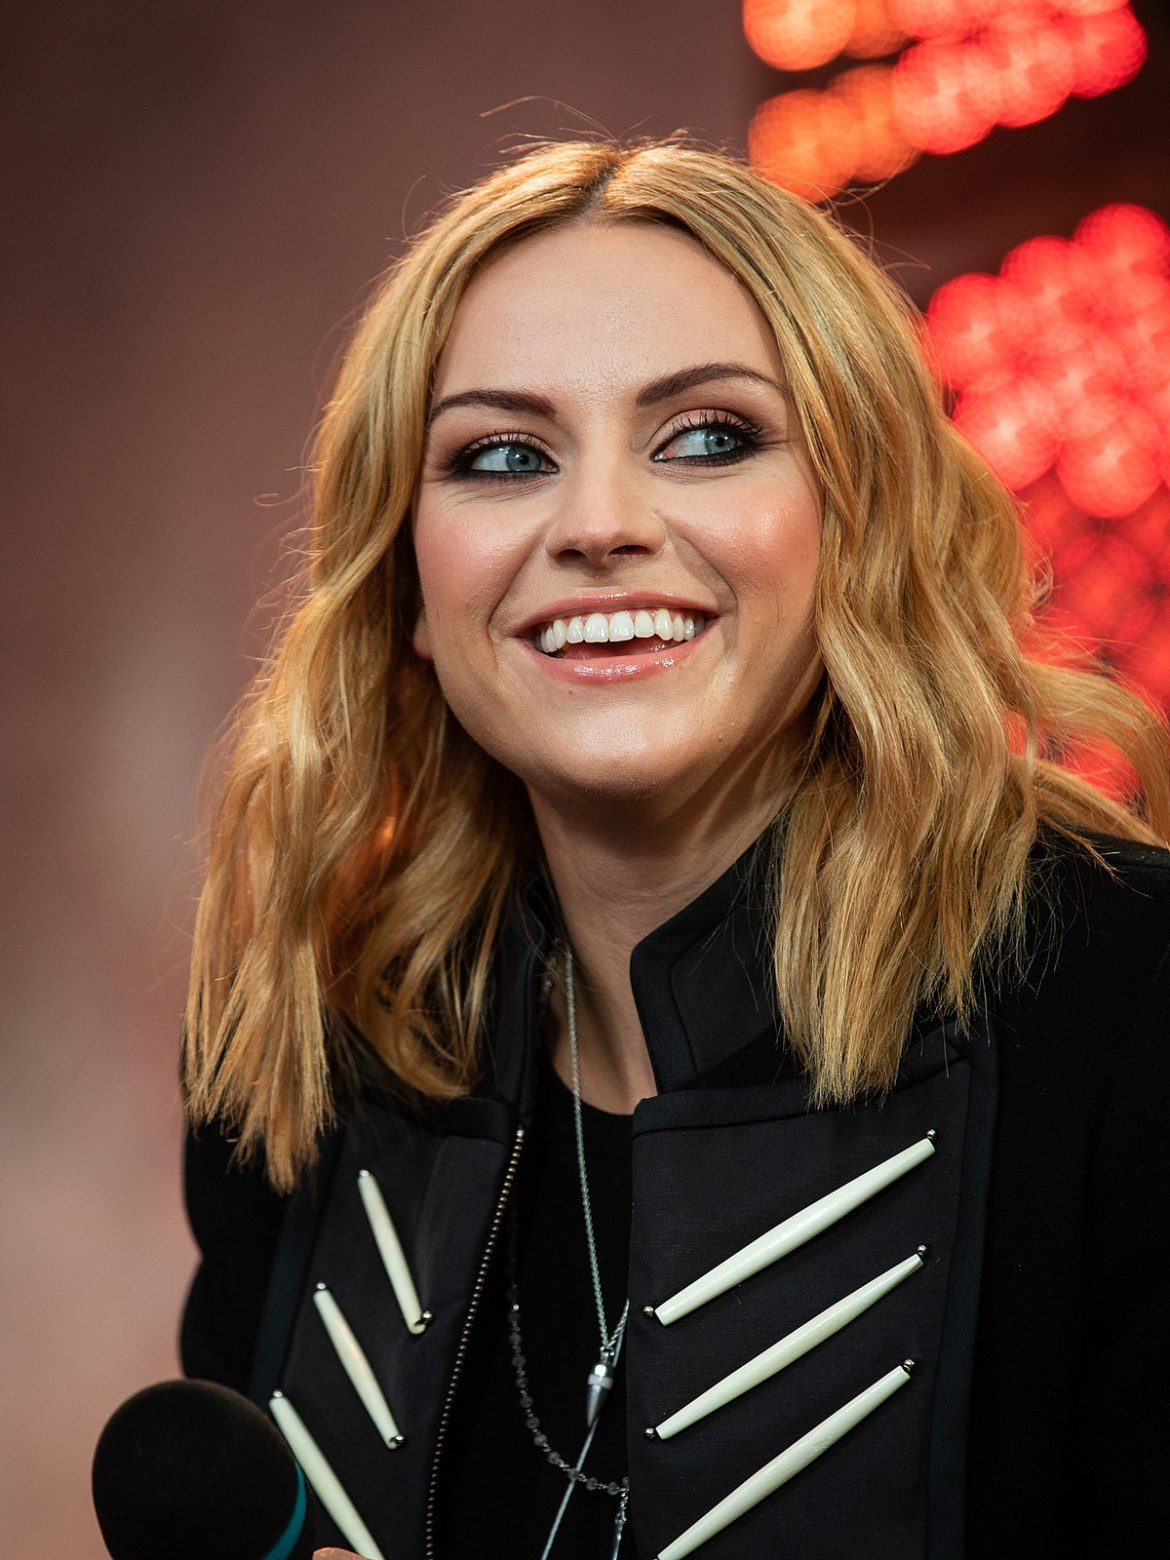 Amy MacDonald, this is the life again